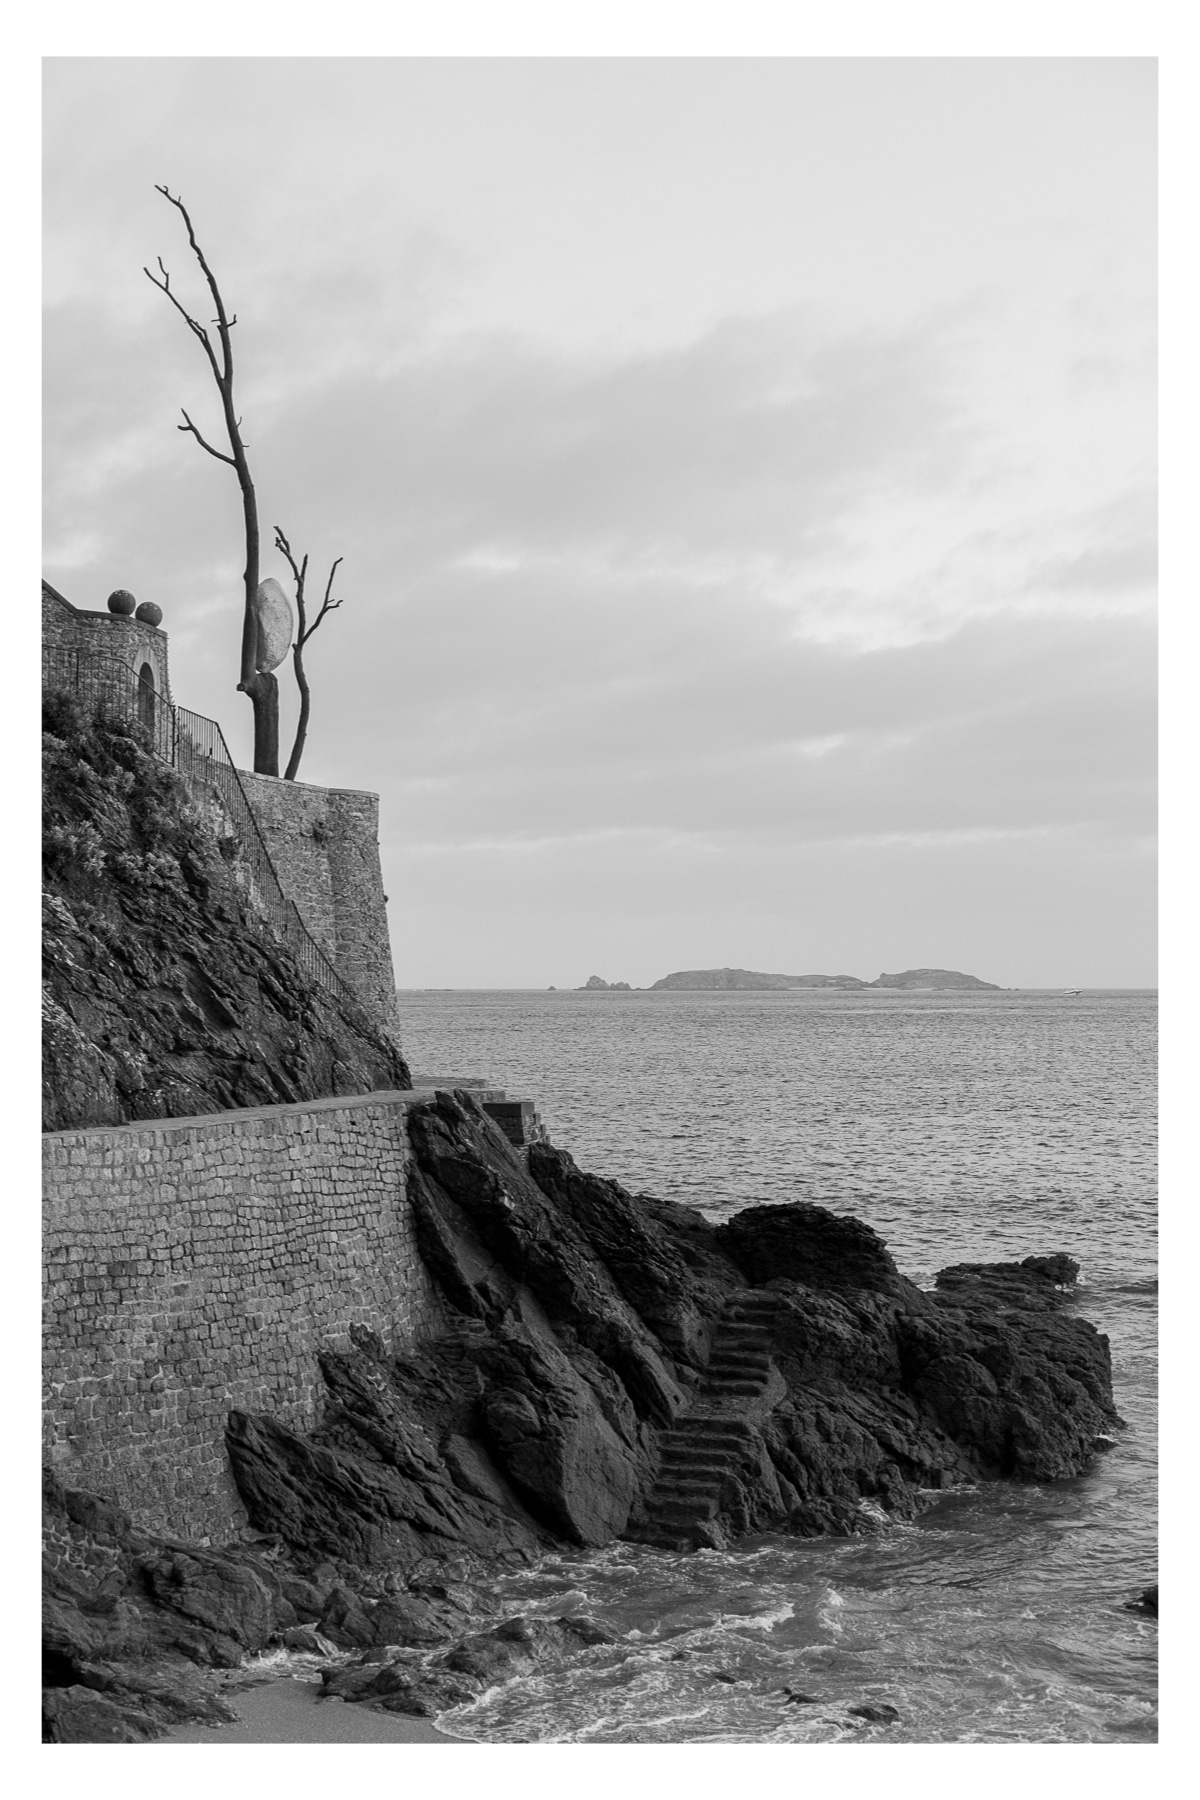 Monochrome photo of a walking path along the ocean with steps leading down into the water below a precariously perched art installation above the walkway.